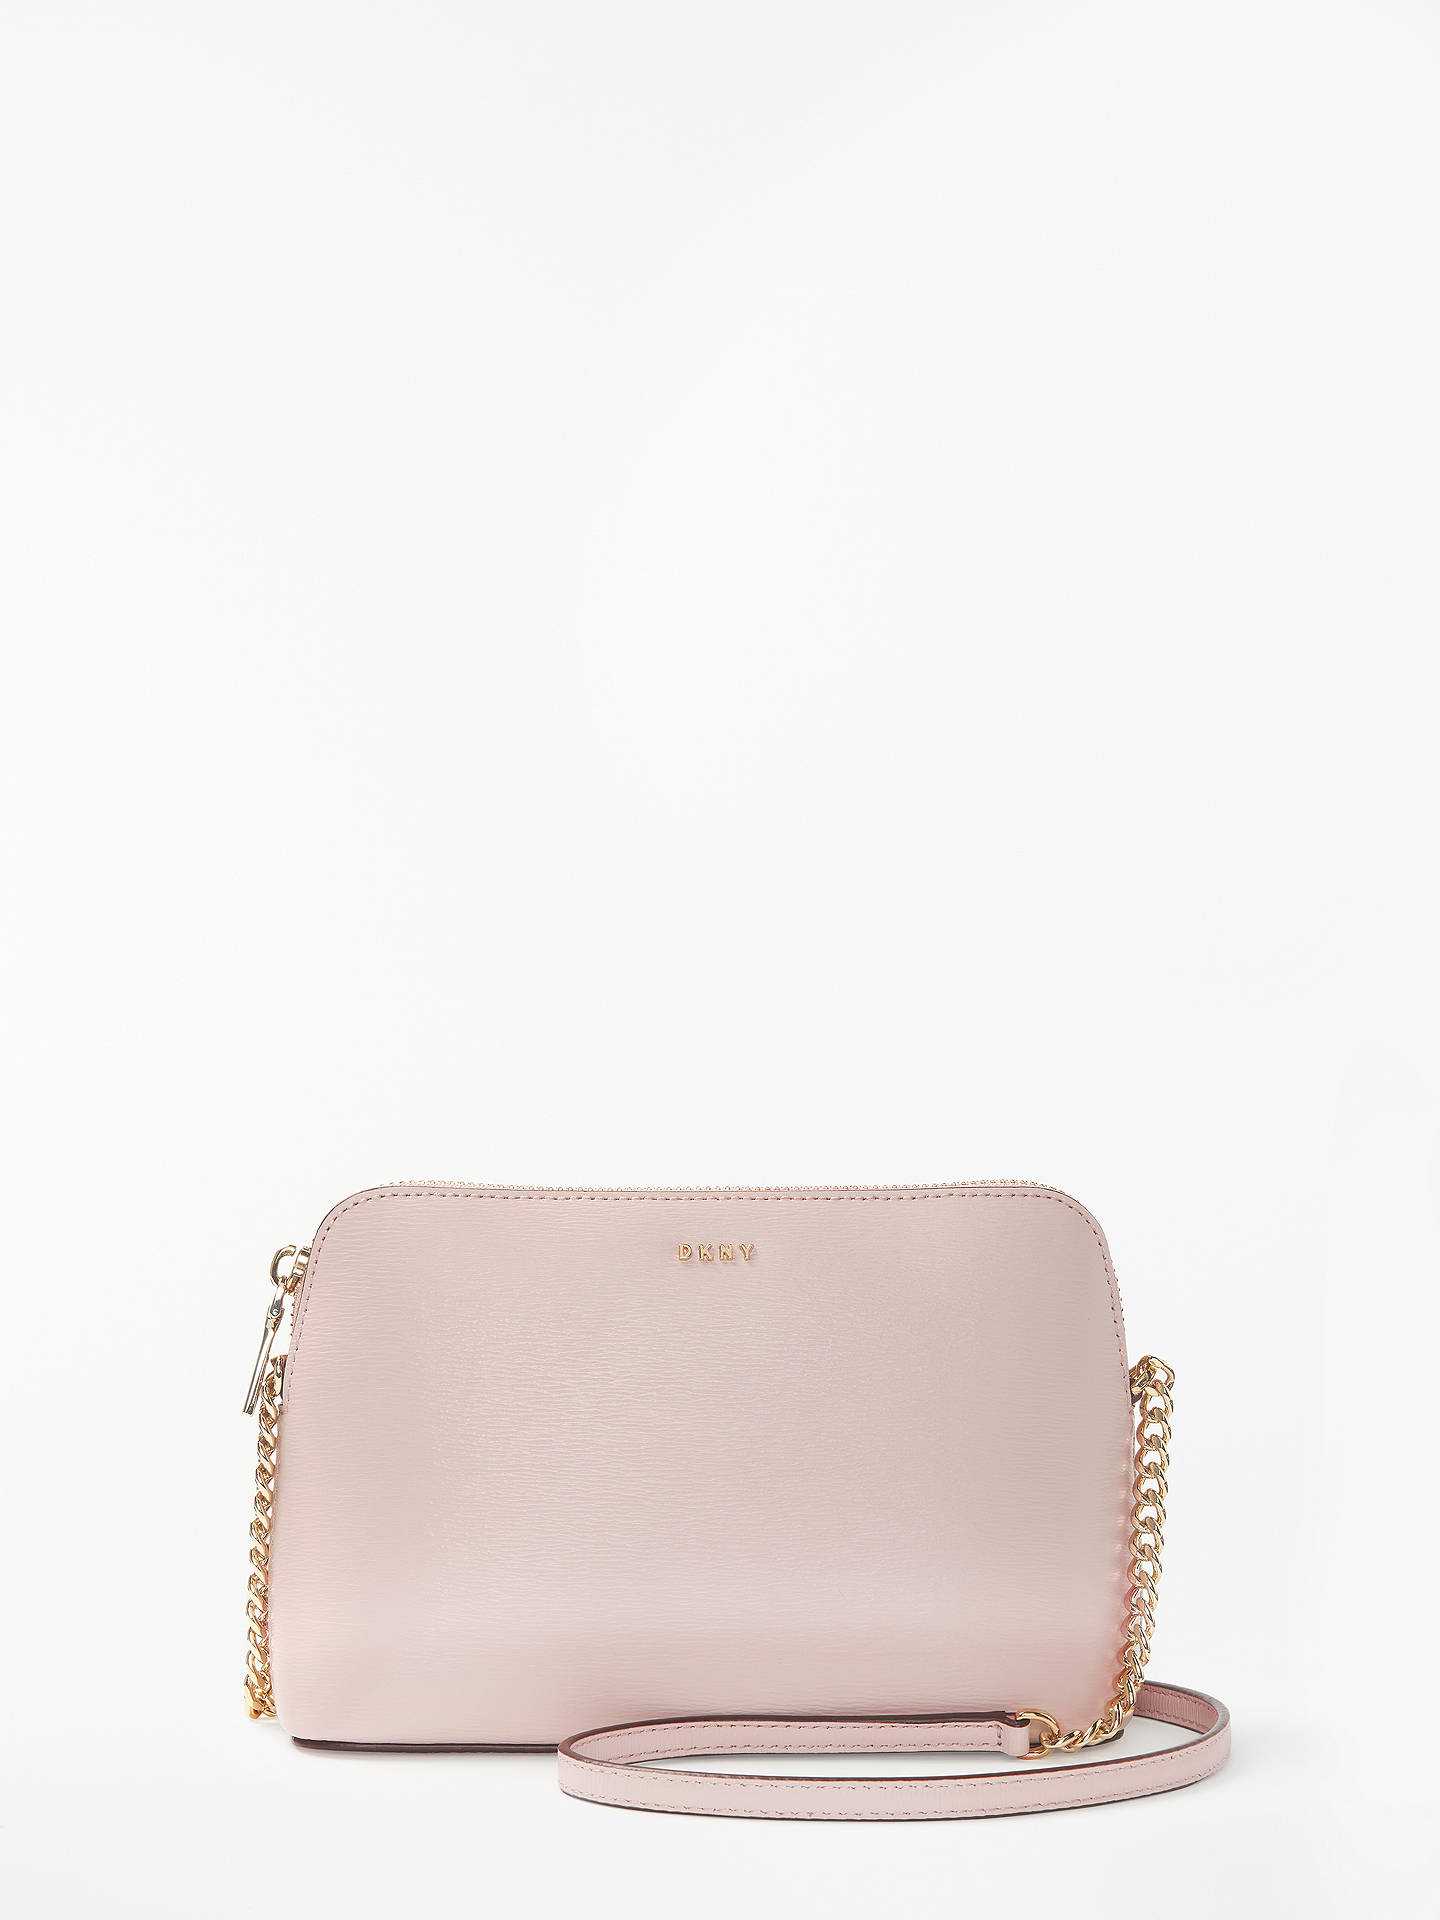 1fd145e84 Buy DKNY Bryant Dome Leather Cross Body Bag, Pink Online at johnlewis.com  ...